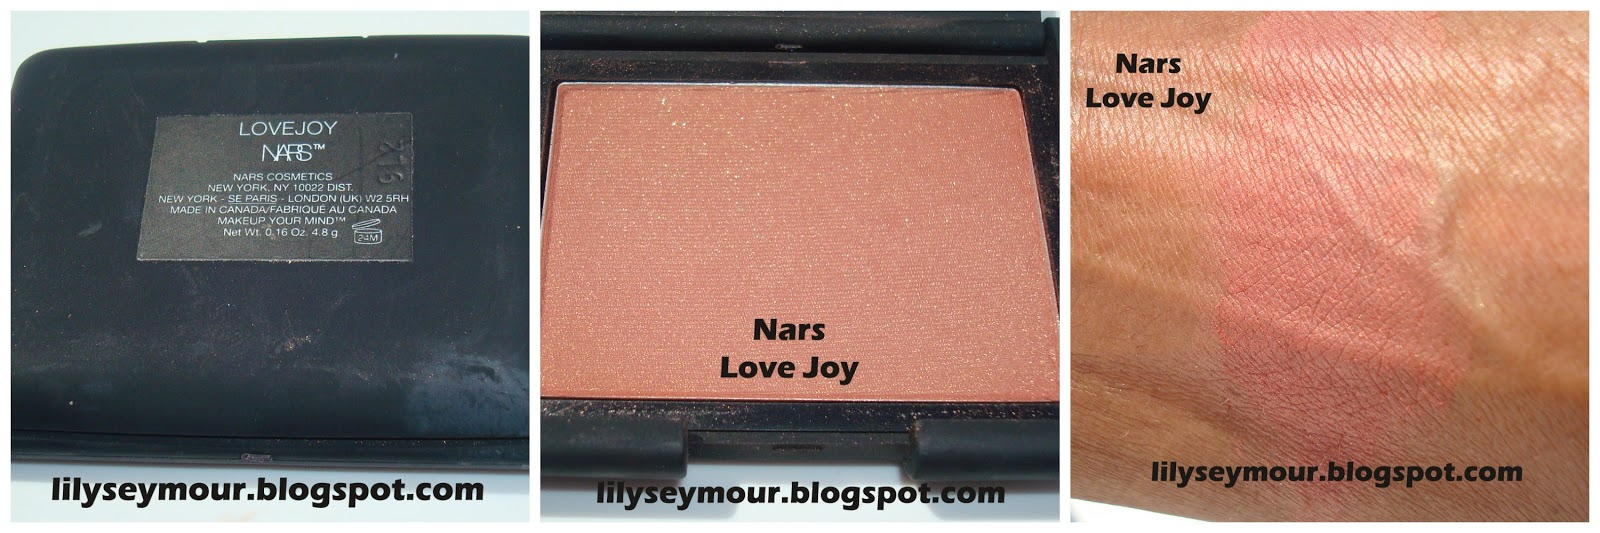 Nars Love Joy BLush